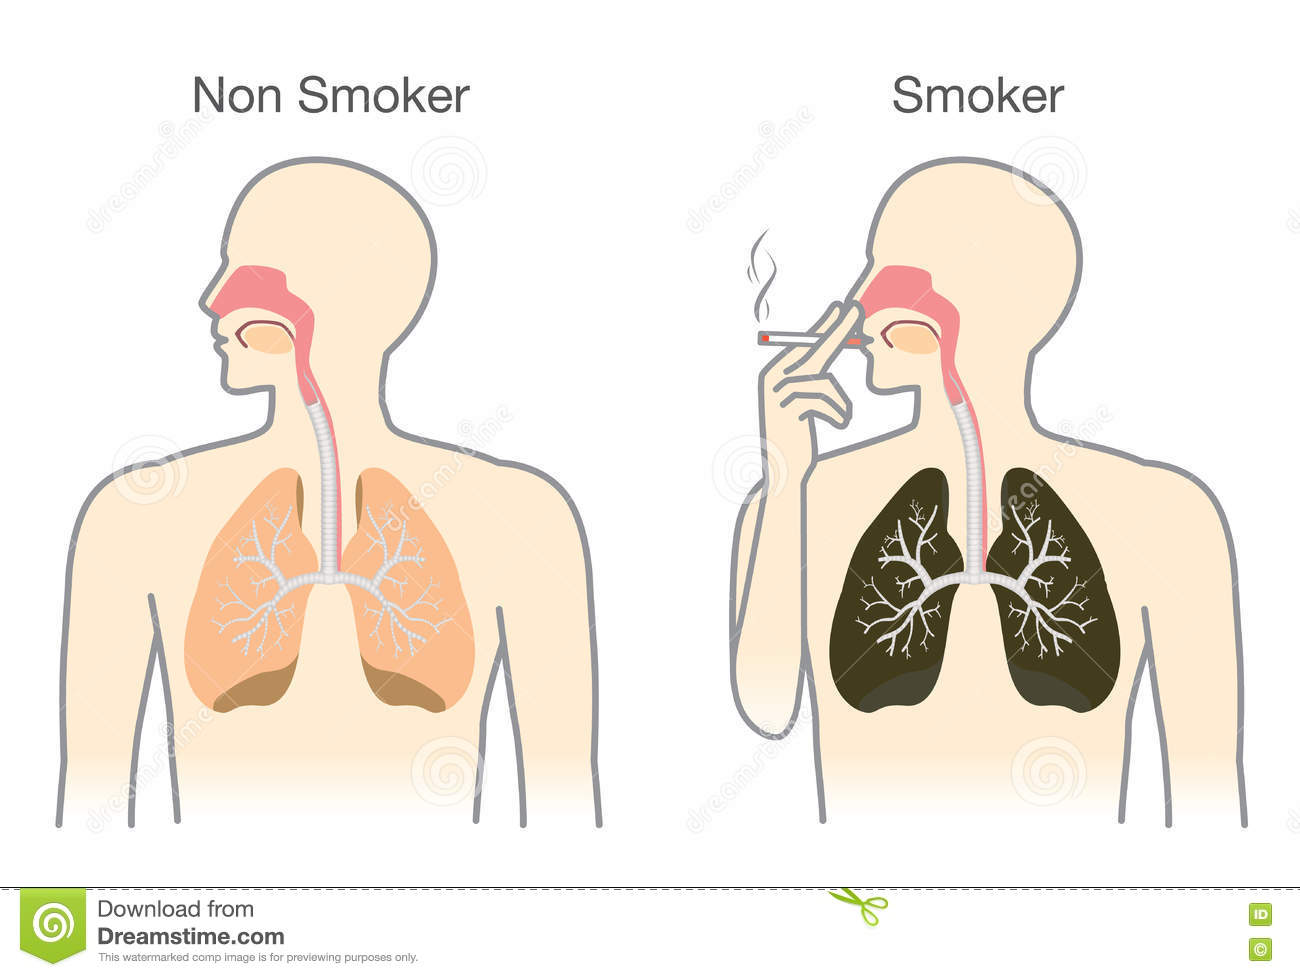 comparison between smokers and non smokers essay Smoking cause and effect essay   smokers experience more coughs and colds as compared to non- smokers.